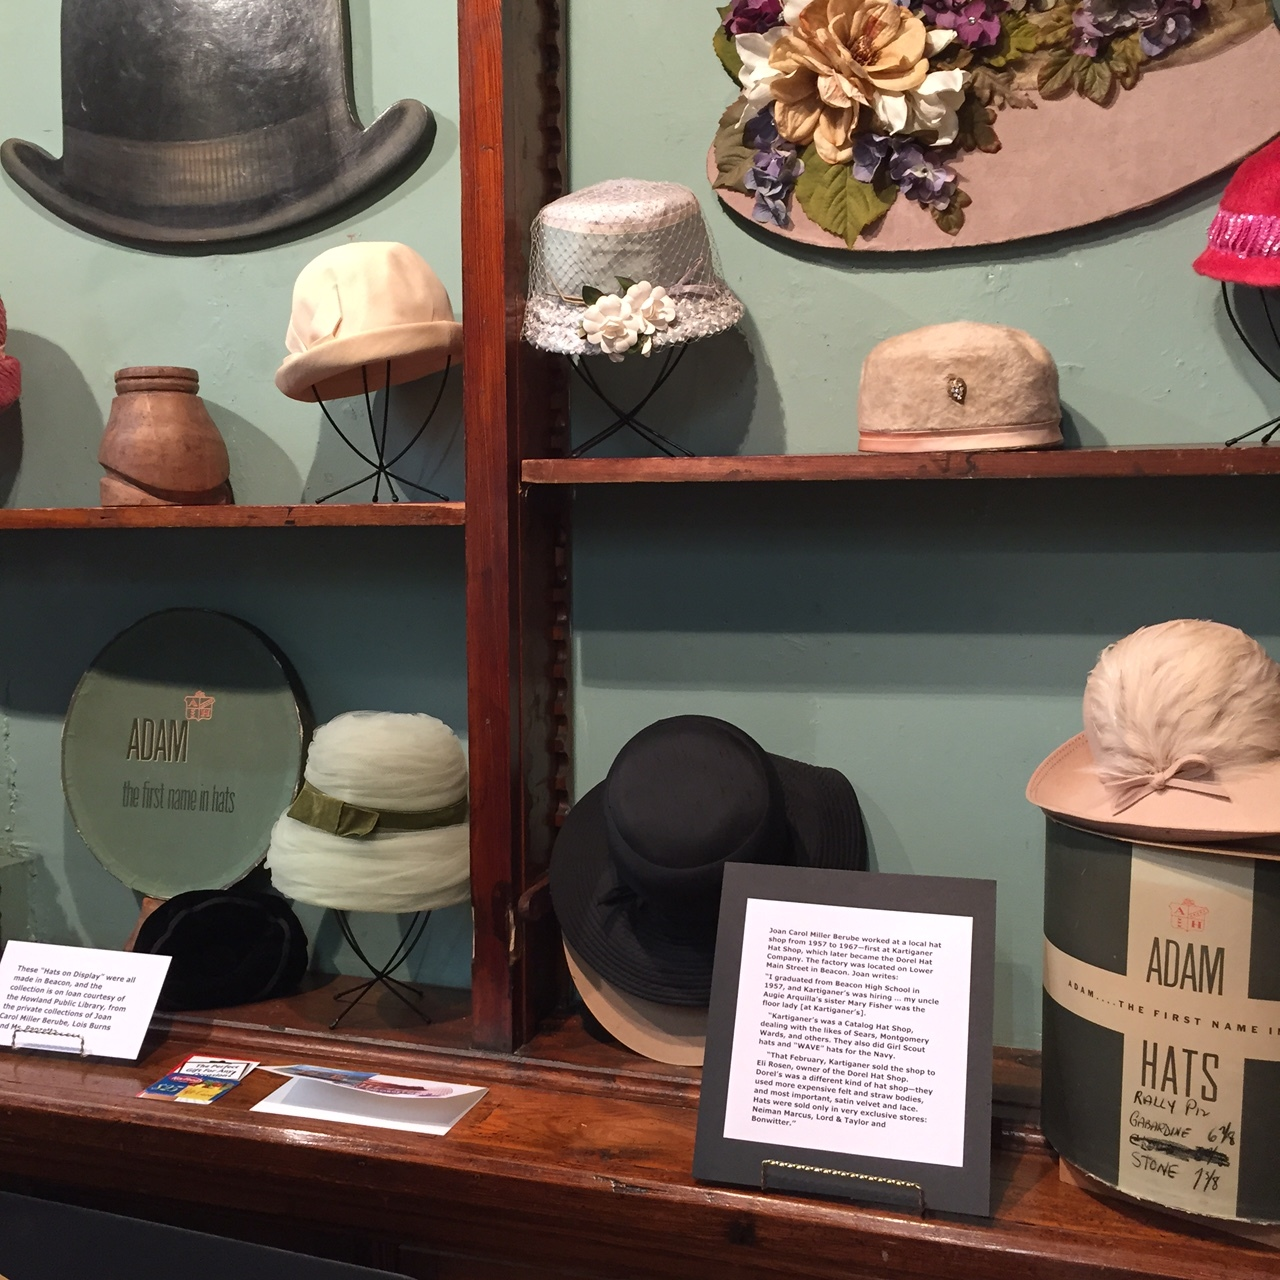 Original hats on display that were made in Beacon.